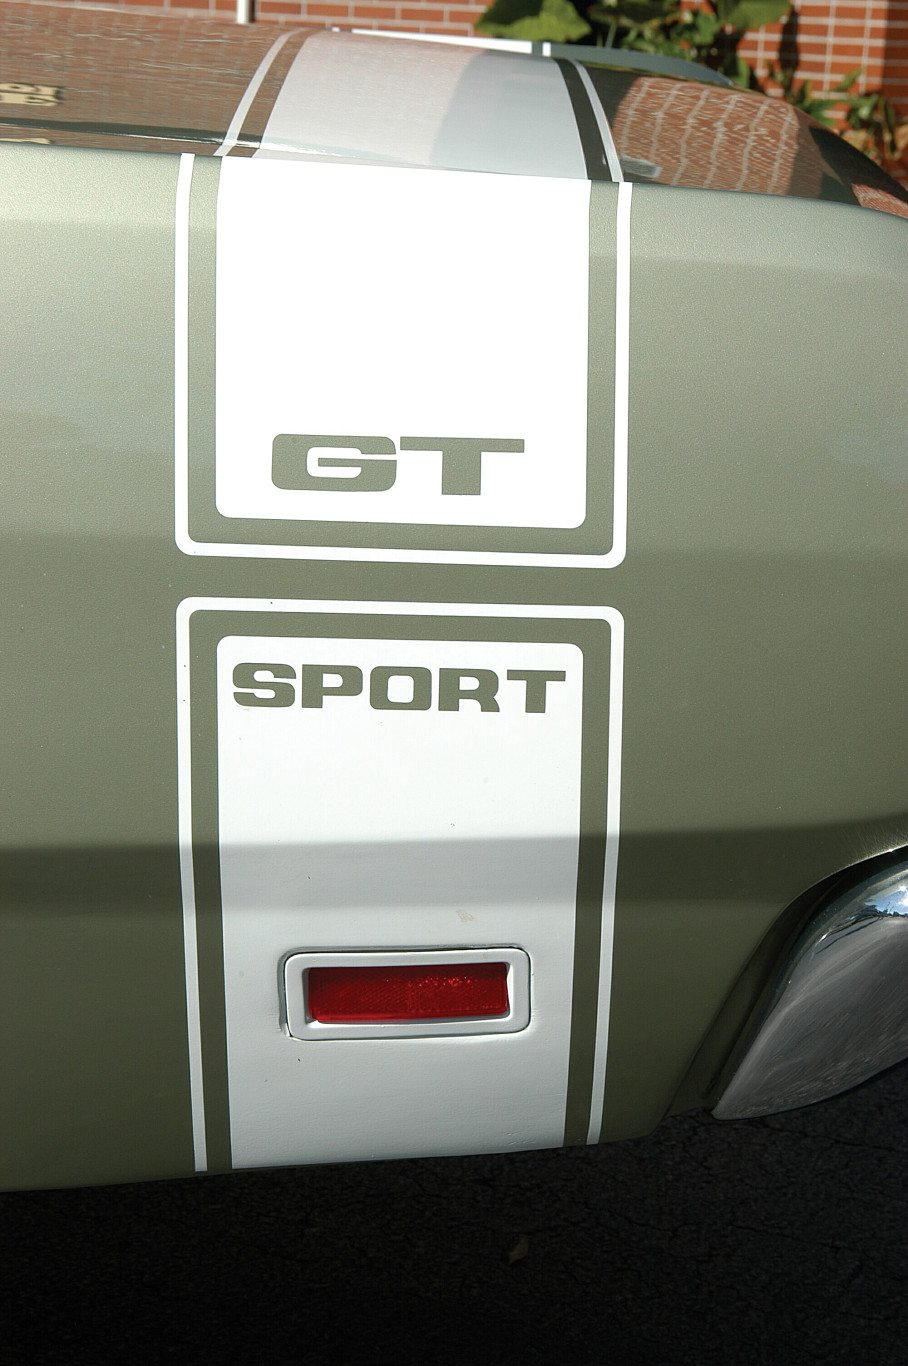 1969 Dodge Dart 340 GTS GT Sport Graphic